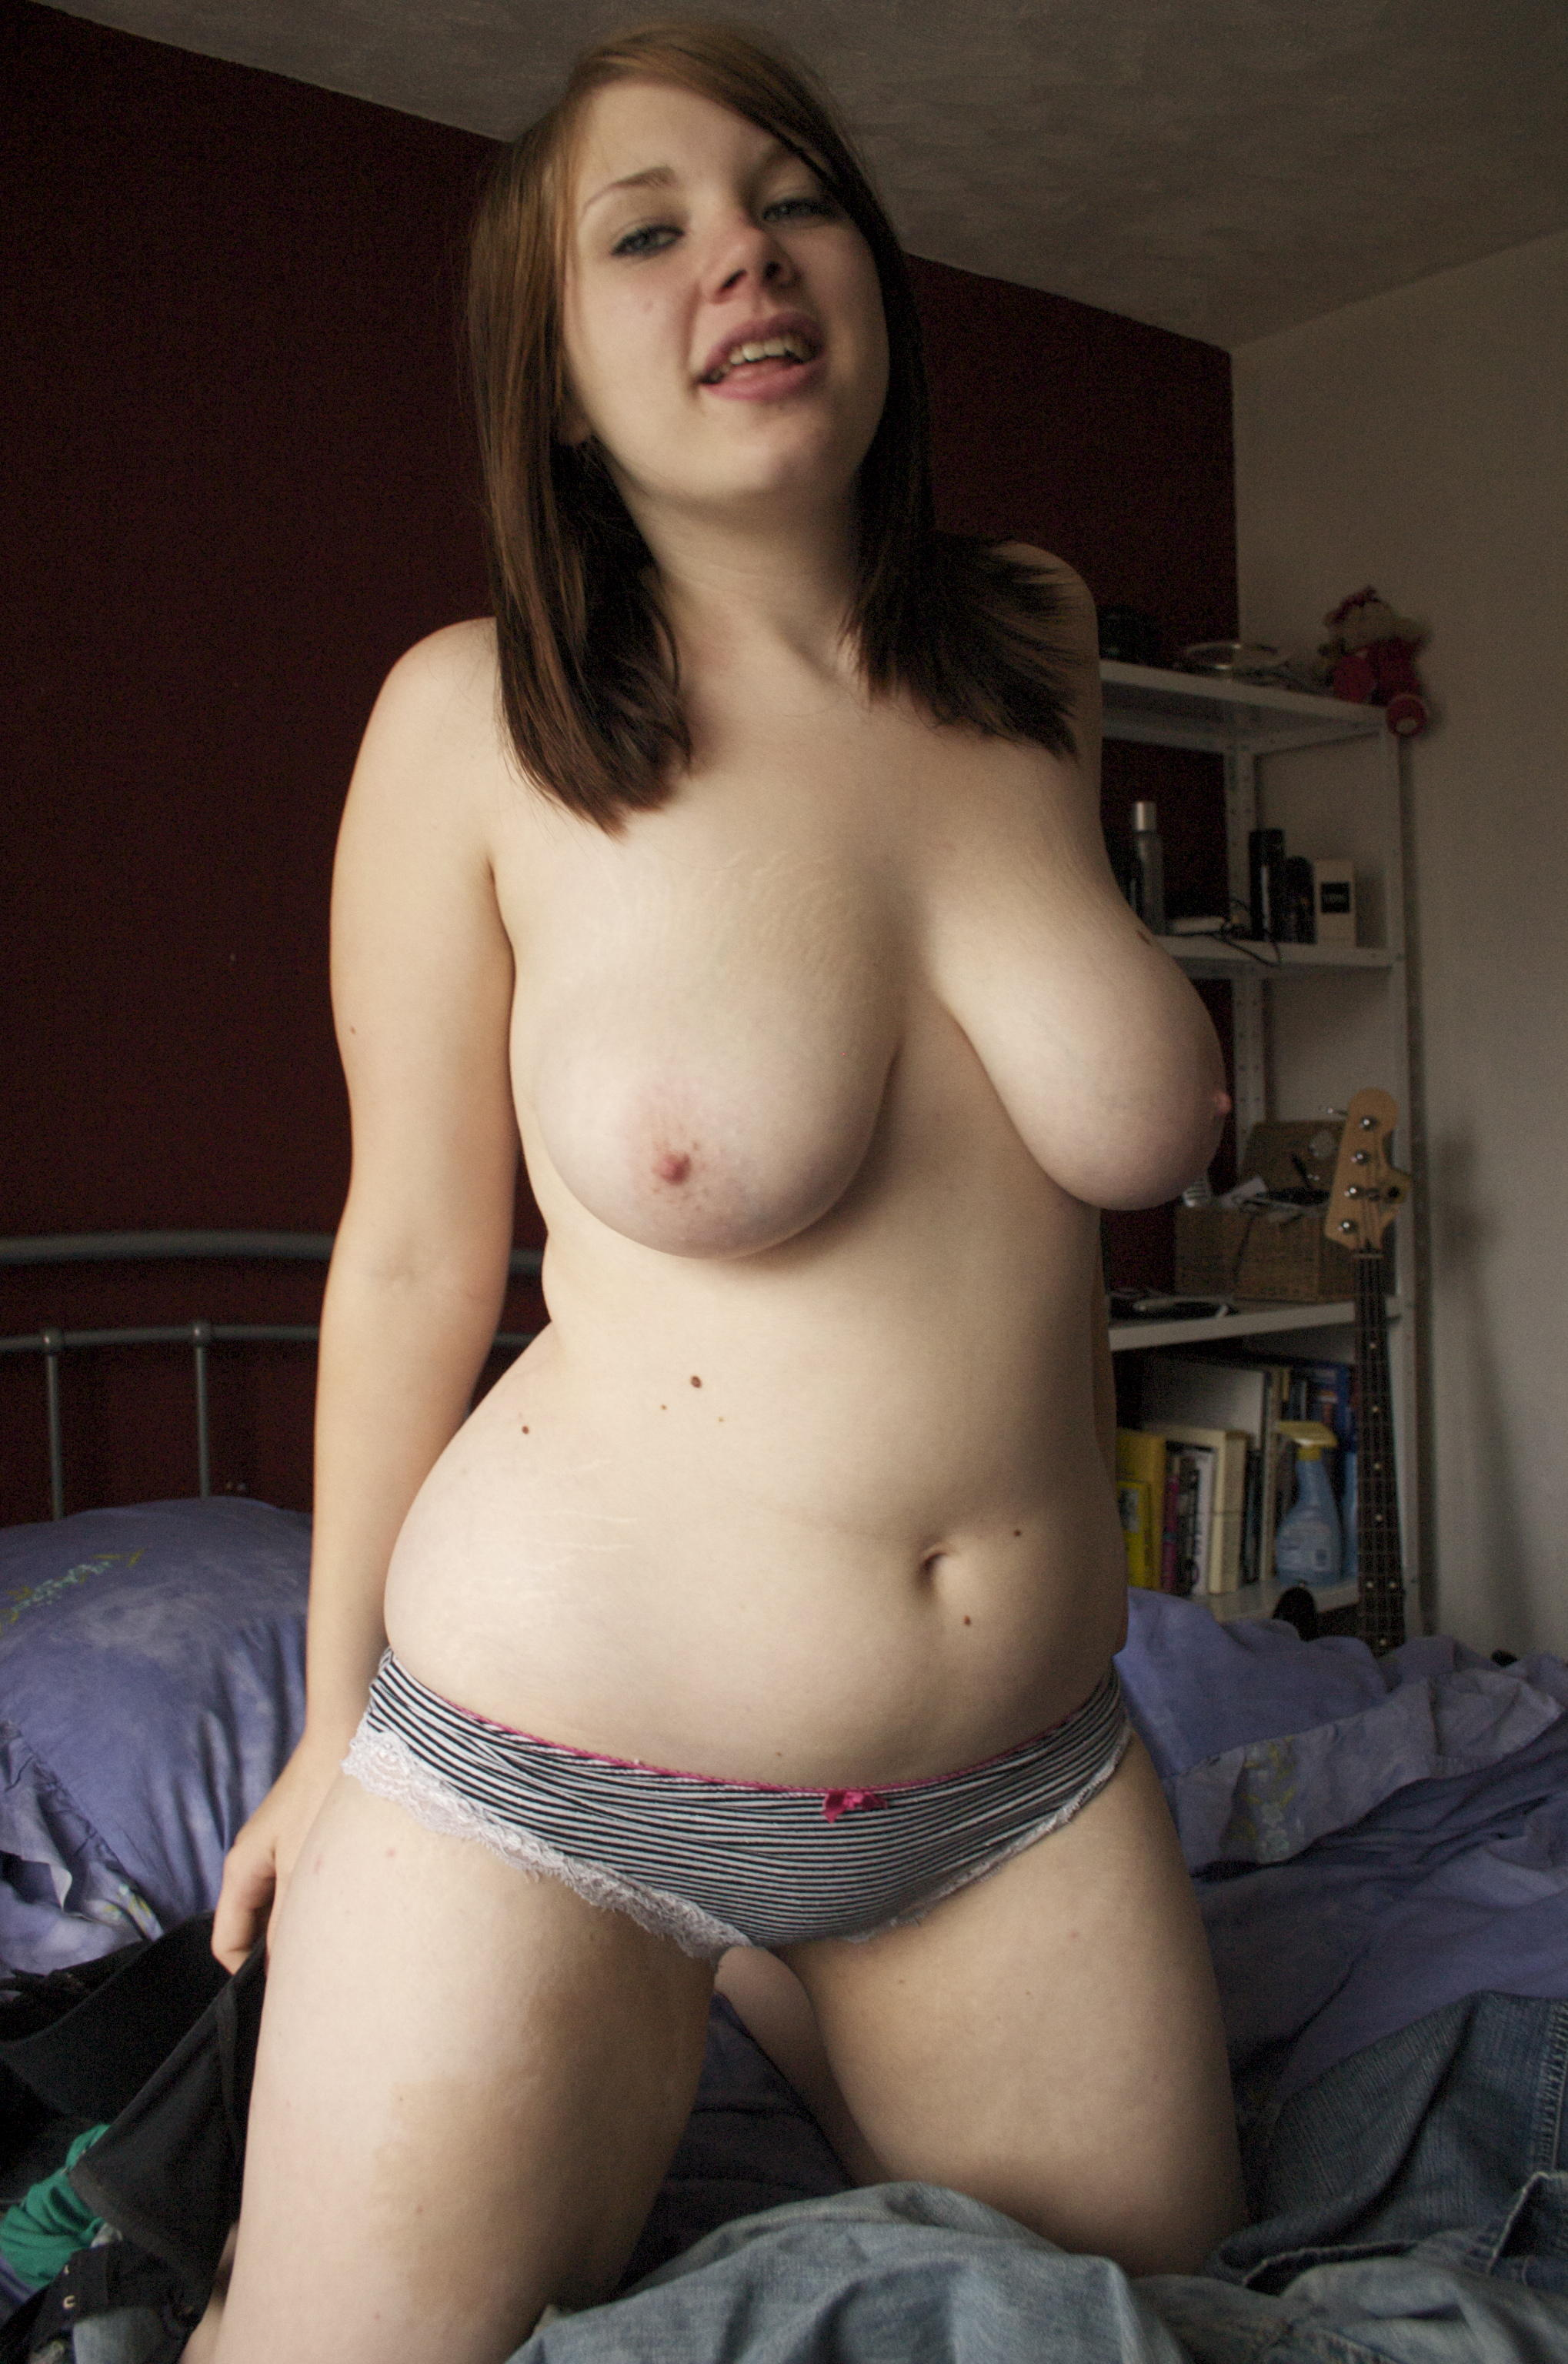 Sexy Chubby Nude Fat Girls